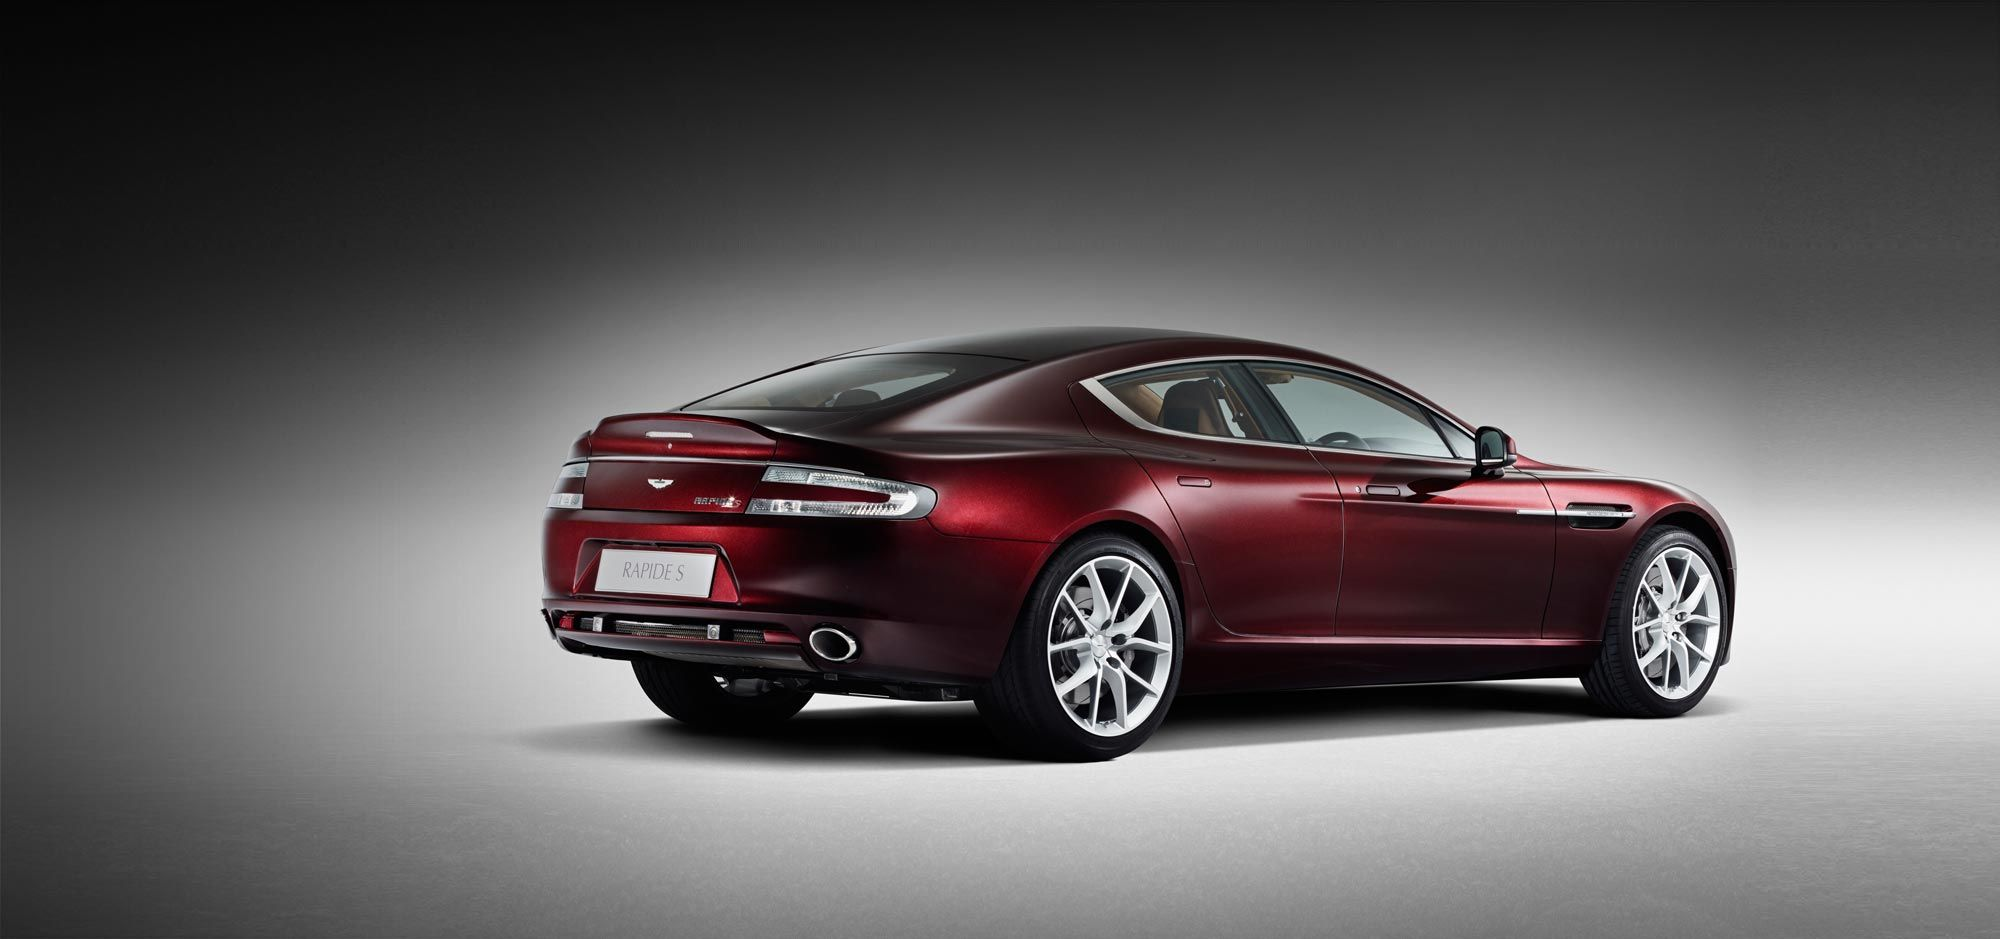 Aston Martin Is Today Revealing Details Of Important Enhancements To - Aston martin two door